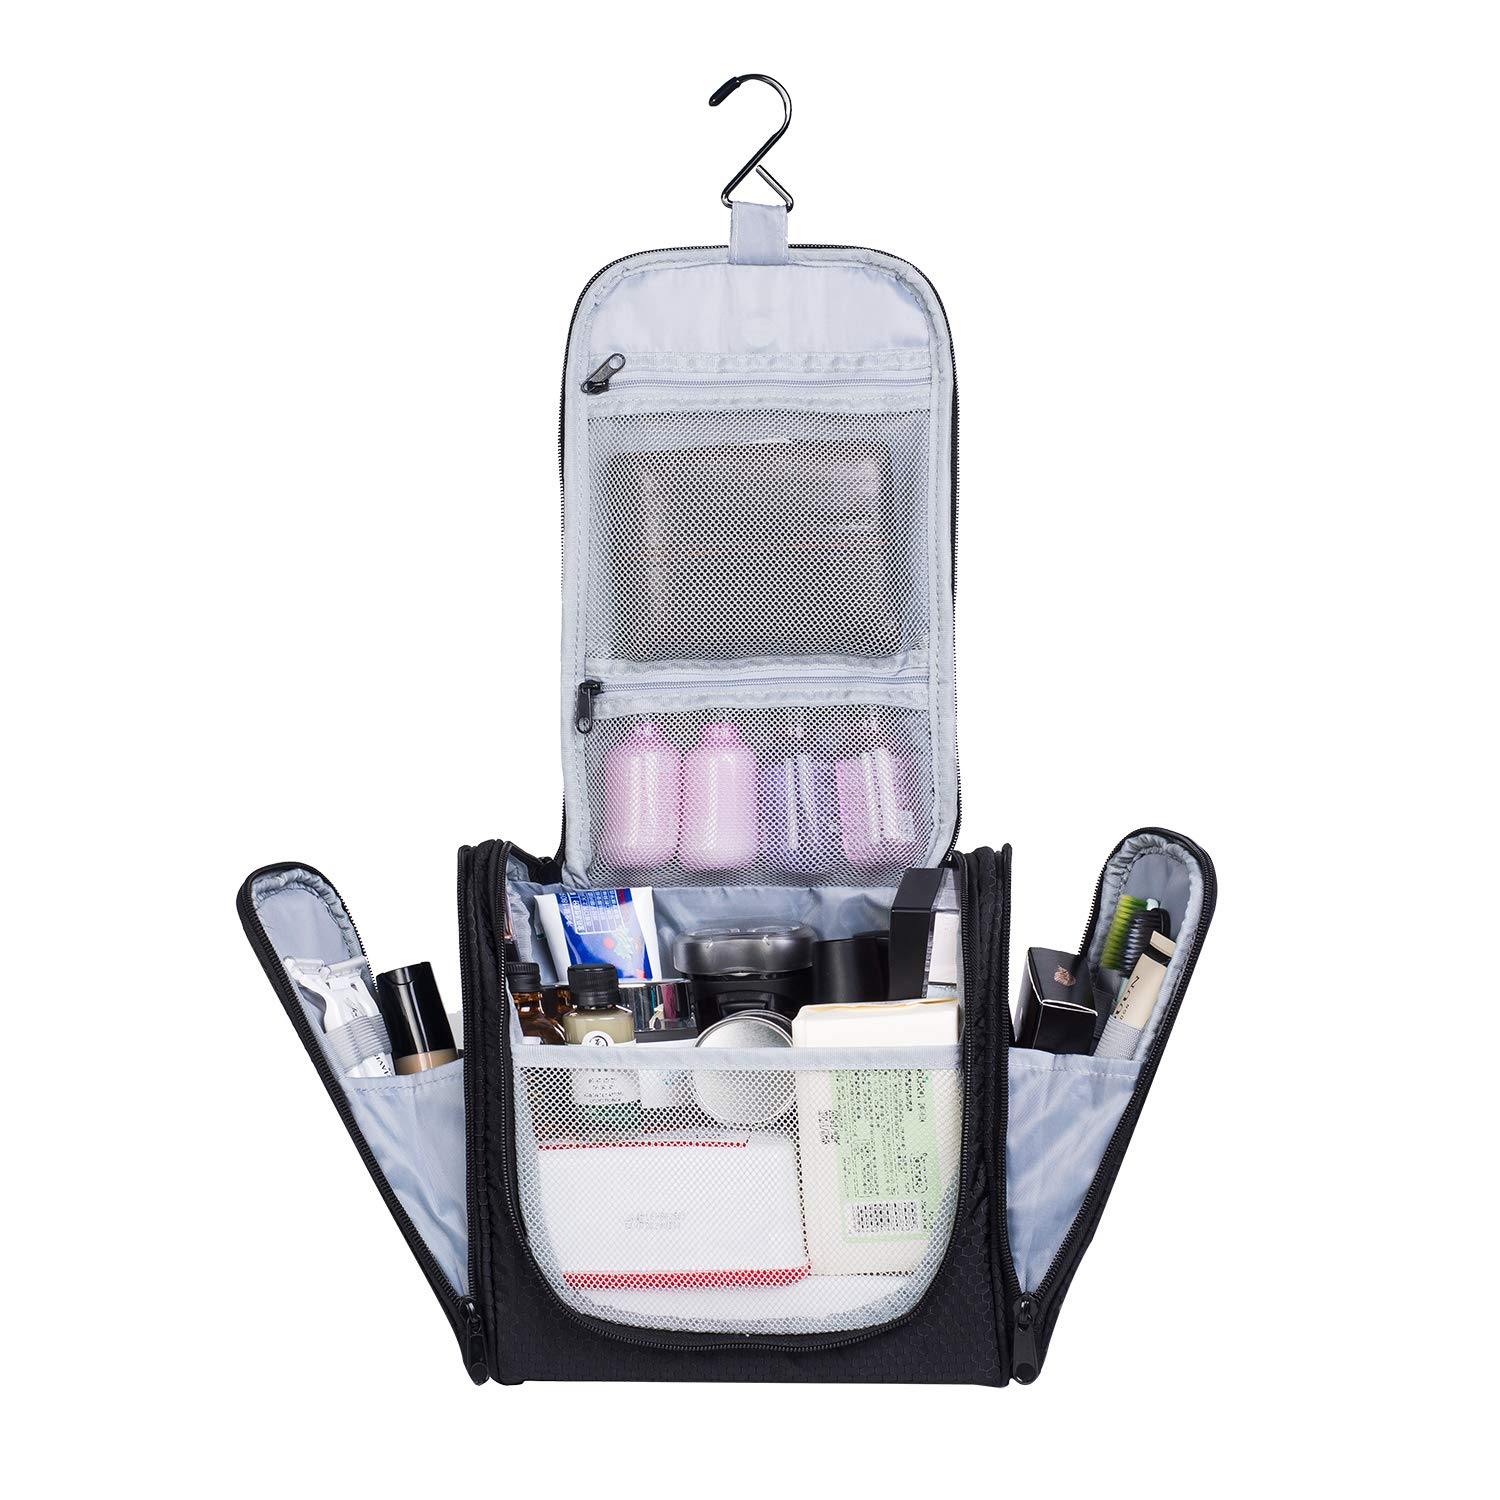 AUSQI Deluxe Hanging Toiletry Bag: Travel Toiletry Organizer Bag for Home, Trips, Hotel & Holidays|Personal Waterproof Zippered Luggage Toiletry Bag|Top Gifting Idea For Men & Women